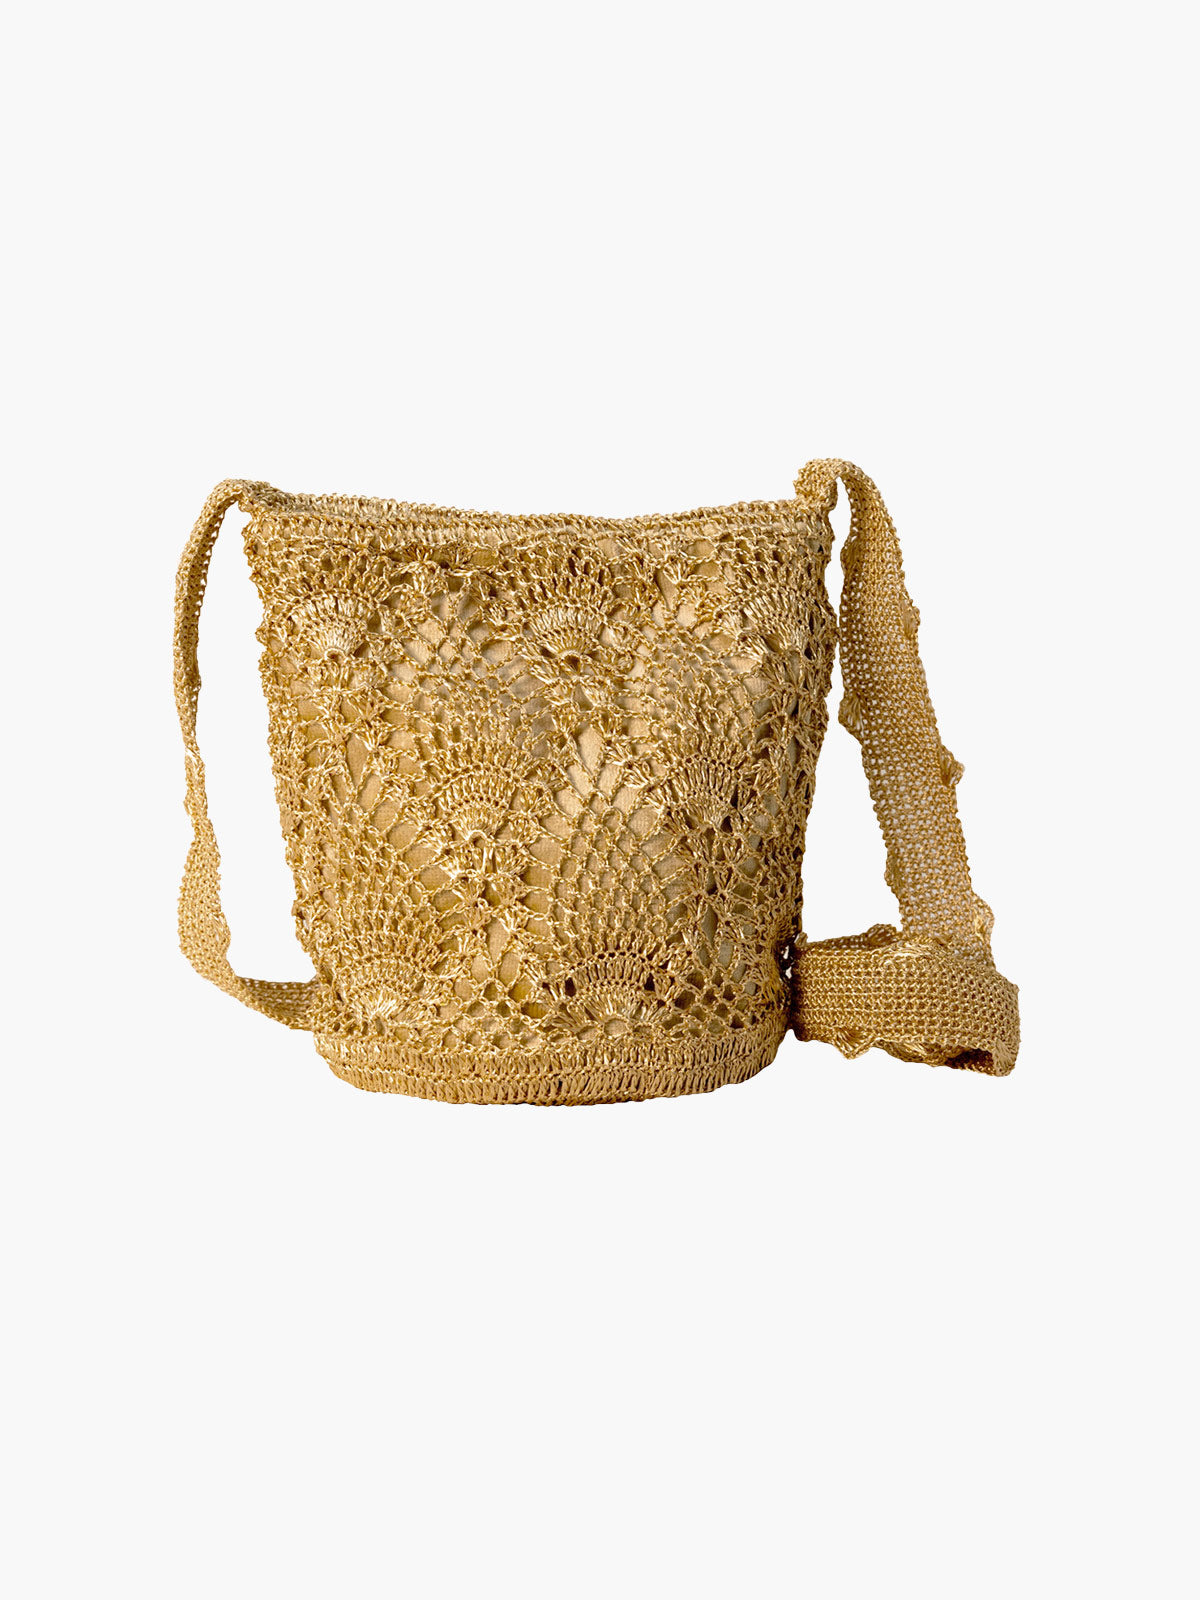 Pineapple Weave Mochila | Gold & Beige Pineapple Weave Mochila | Gold & Beige